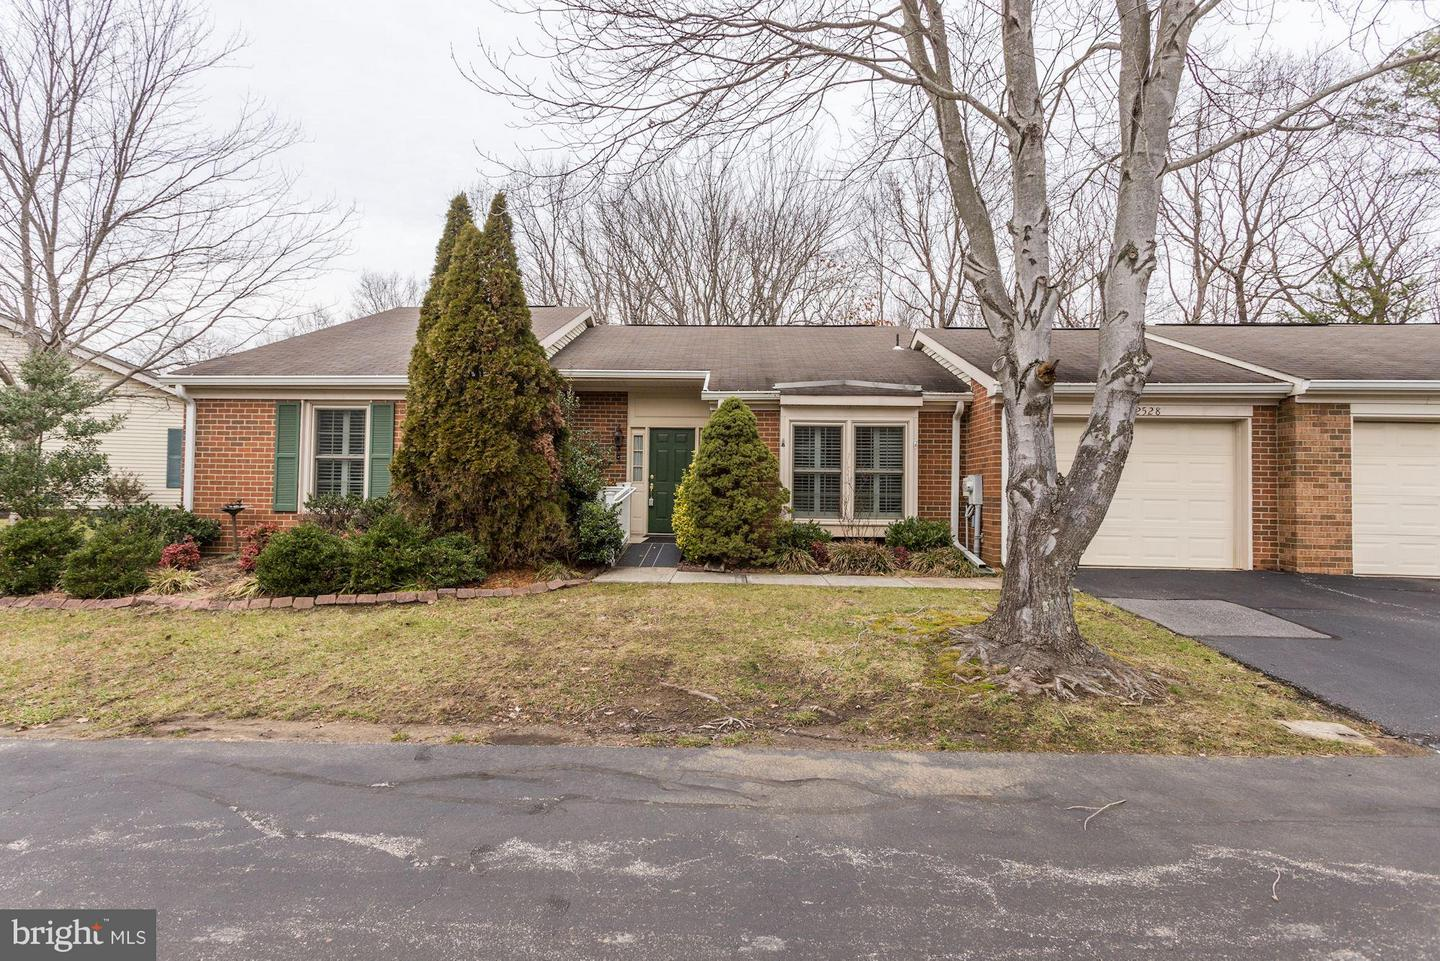 2528 N HAVEN COVE 95, ANNAPOLIS, Maryland